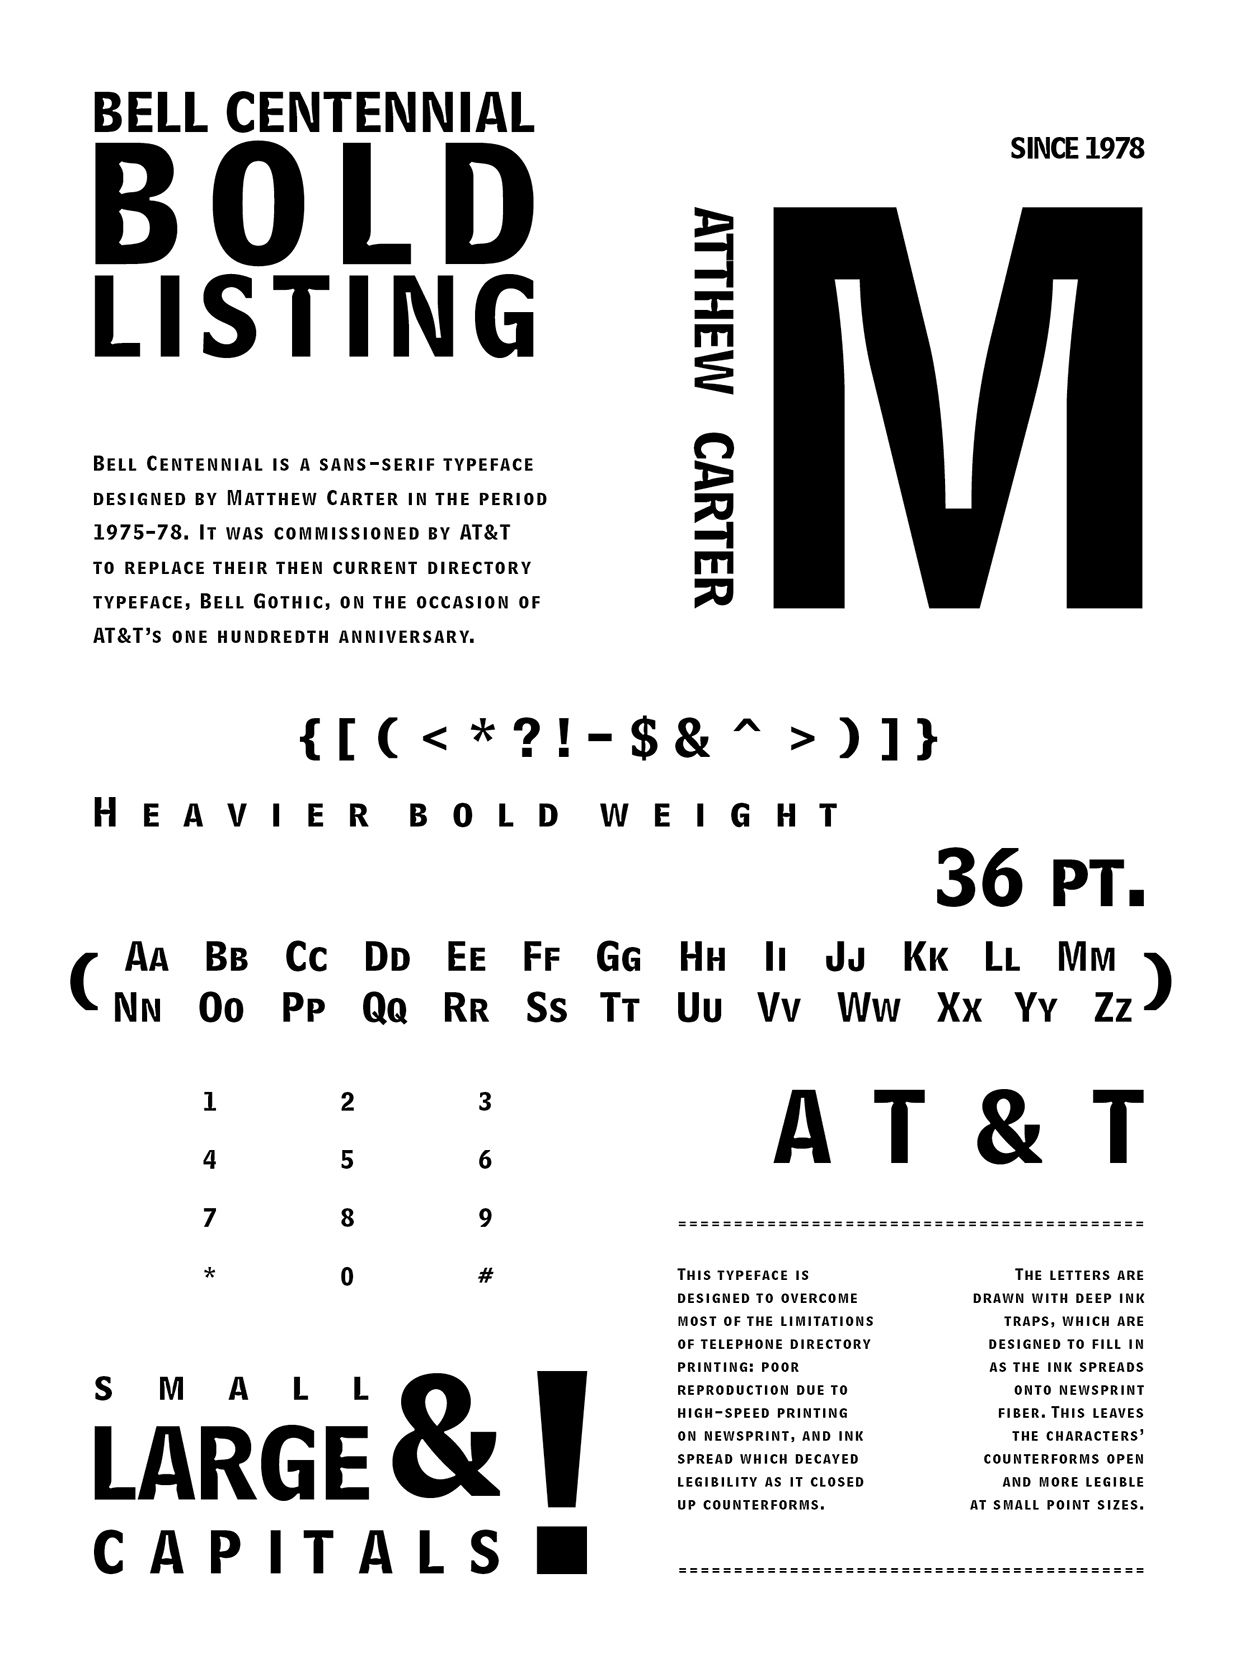 bell centennial designed by matthew carter Matthew carter (born 1 october 1937) is a british type designer a 2005 new yorker profile described him as 'the most widely read man in the world' by considering the amount of text set in his commonly used fonts.